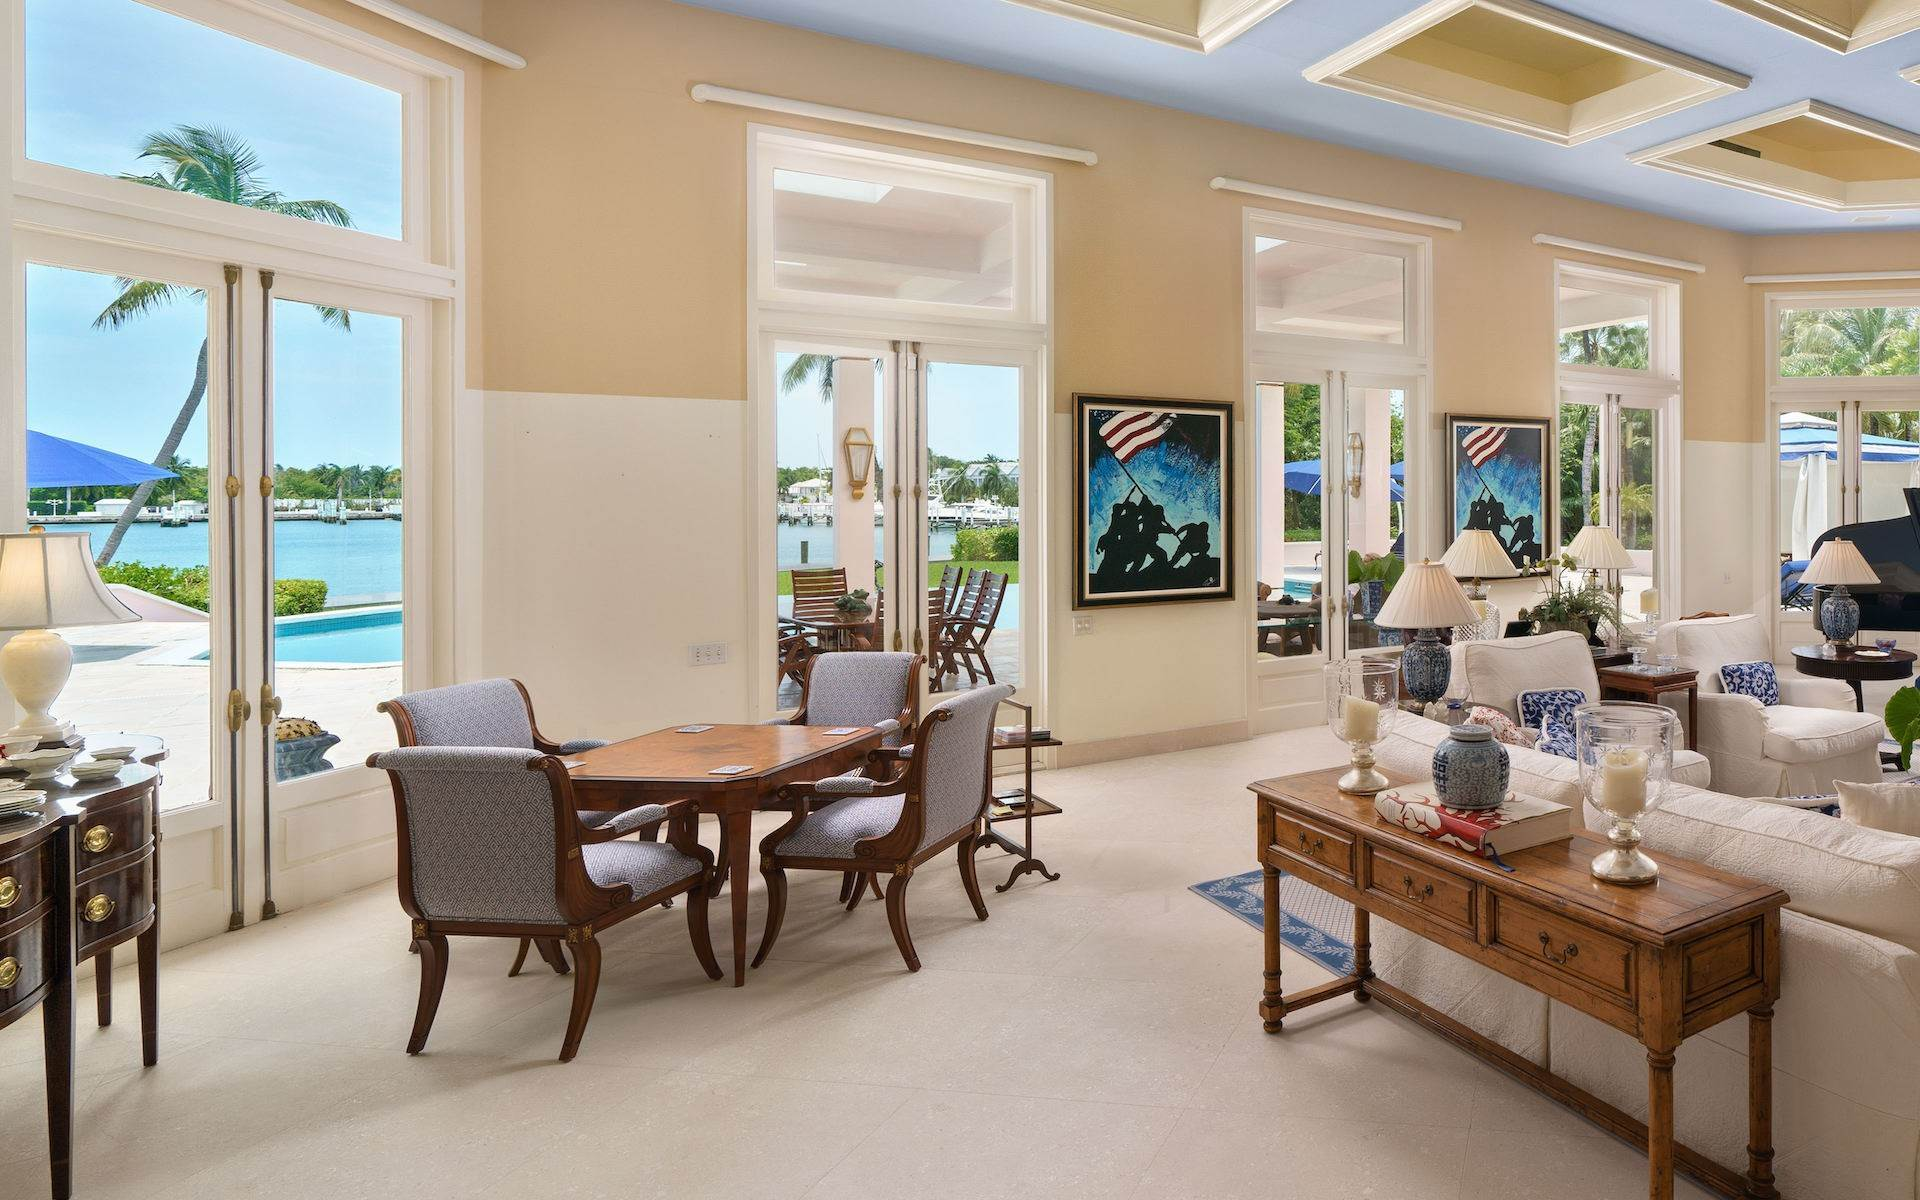 17. Single Family Homes for Sale at Luxurious Lyford Cay Canalfront Estate - MLS 40934 Lyford Cay, Nassau And Paradise Island, Bahamas